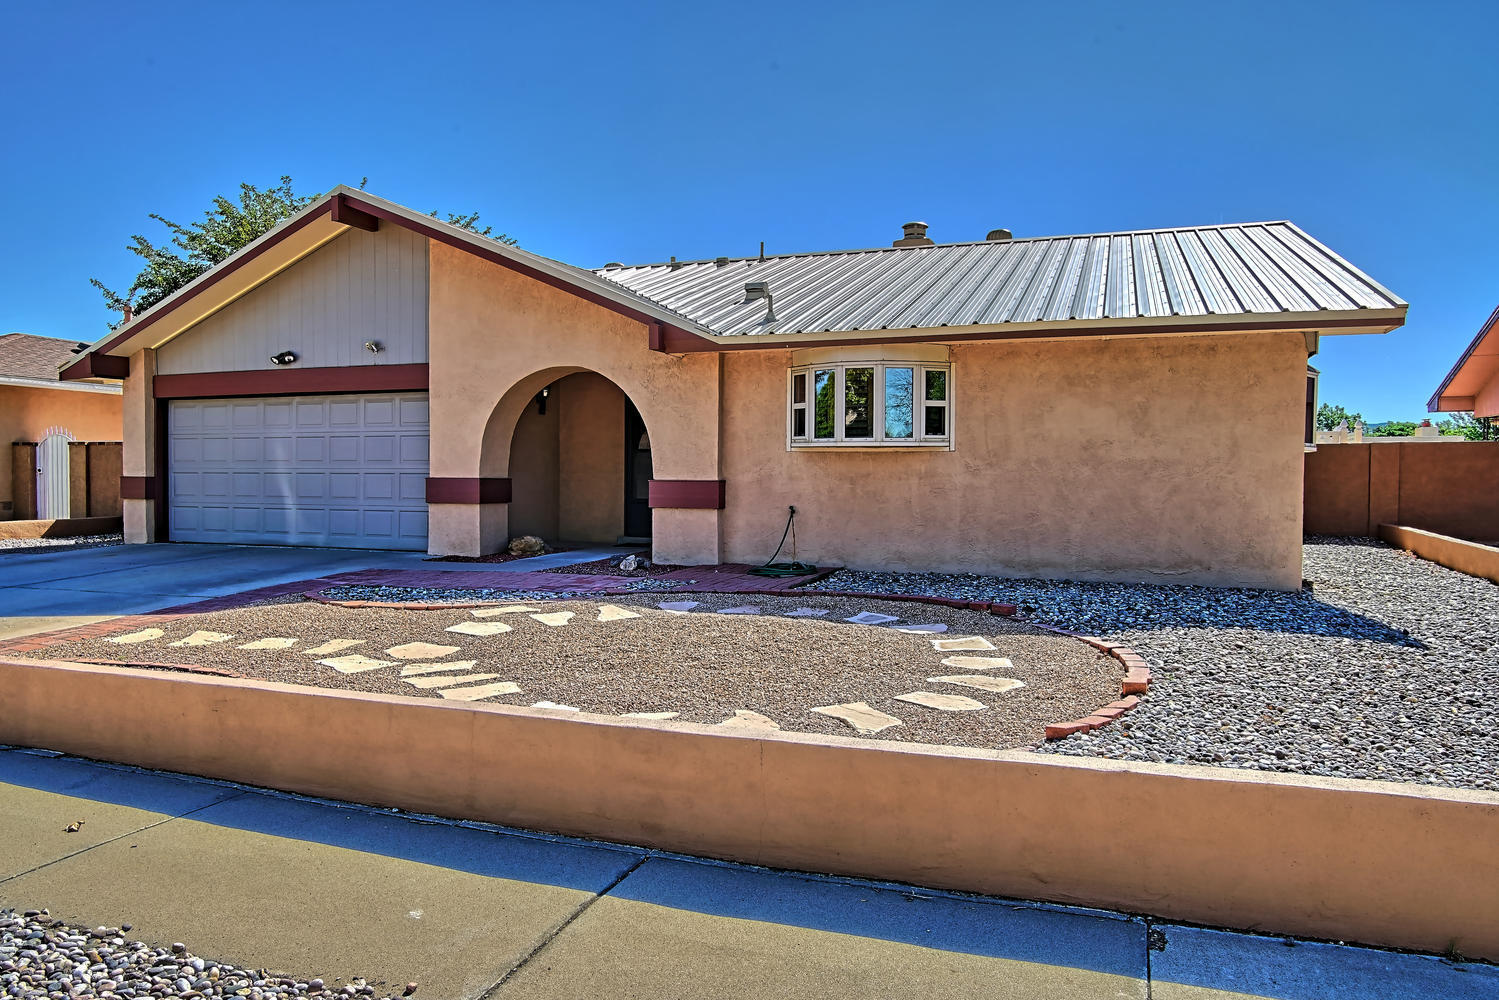 This warm and cozy home has everything your discerning buyer needs. The living room features a wood-burning fireplace and plenty of room for casual entertaining. Bedrooms are spacious and refrigerated air conditioning keeps the whole house nice and cool at this time of year. Other improvements include newer flooring, heater & A/C and windows.  The metal roof was installed in 2010. The entire property requires very little maintenance and the over-sized backyard shed is a big plus. This listing feeds to Volcano Vista HS and is conveniently located close to most everything.